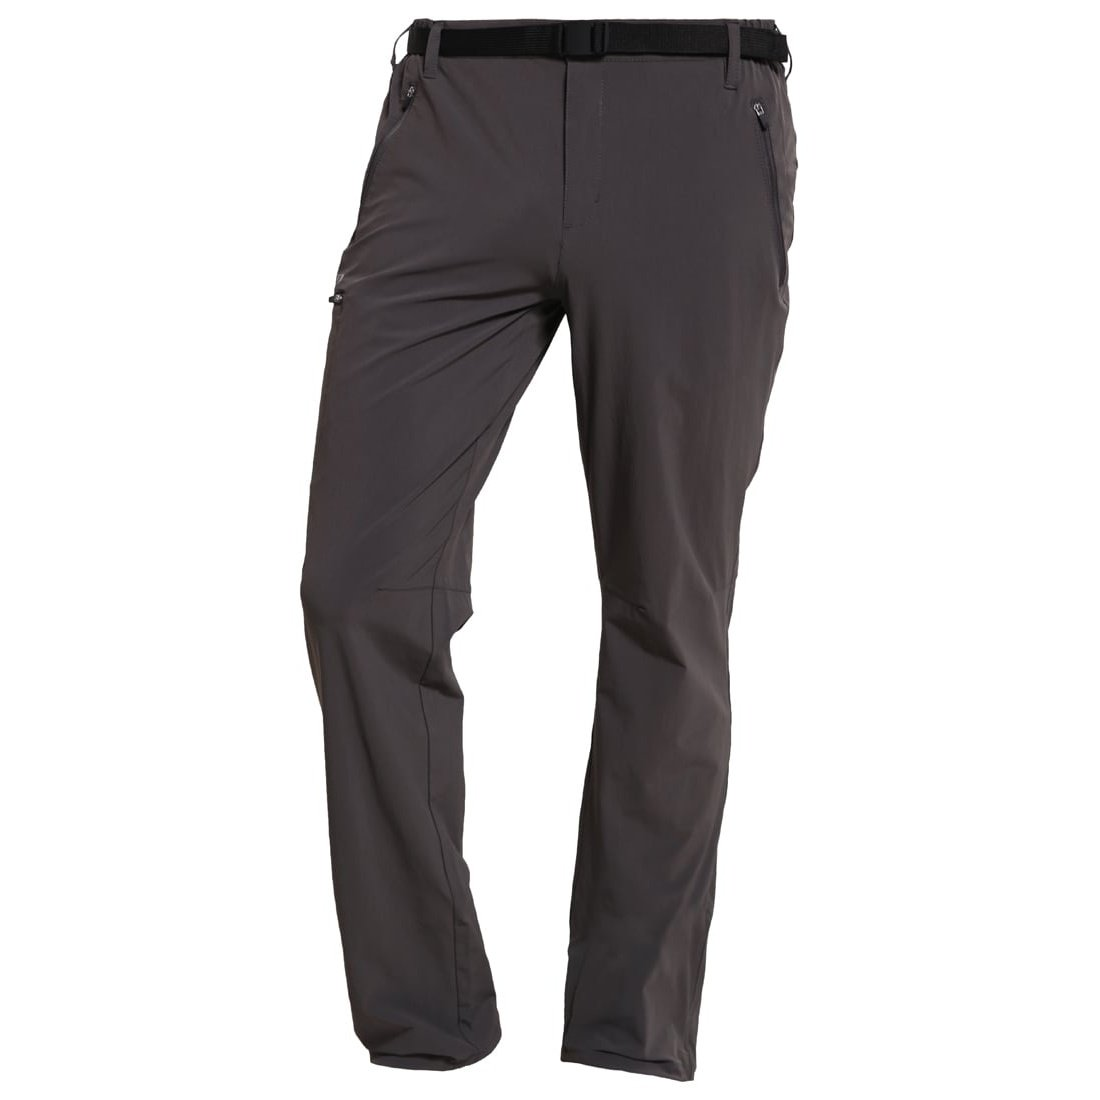 Regatta Xert Stretch II Trousers Men Short Seal Grau Größe 58-Short 2019 Hose lang